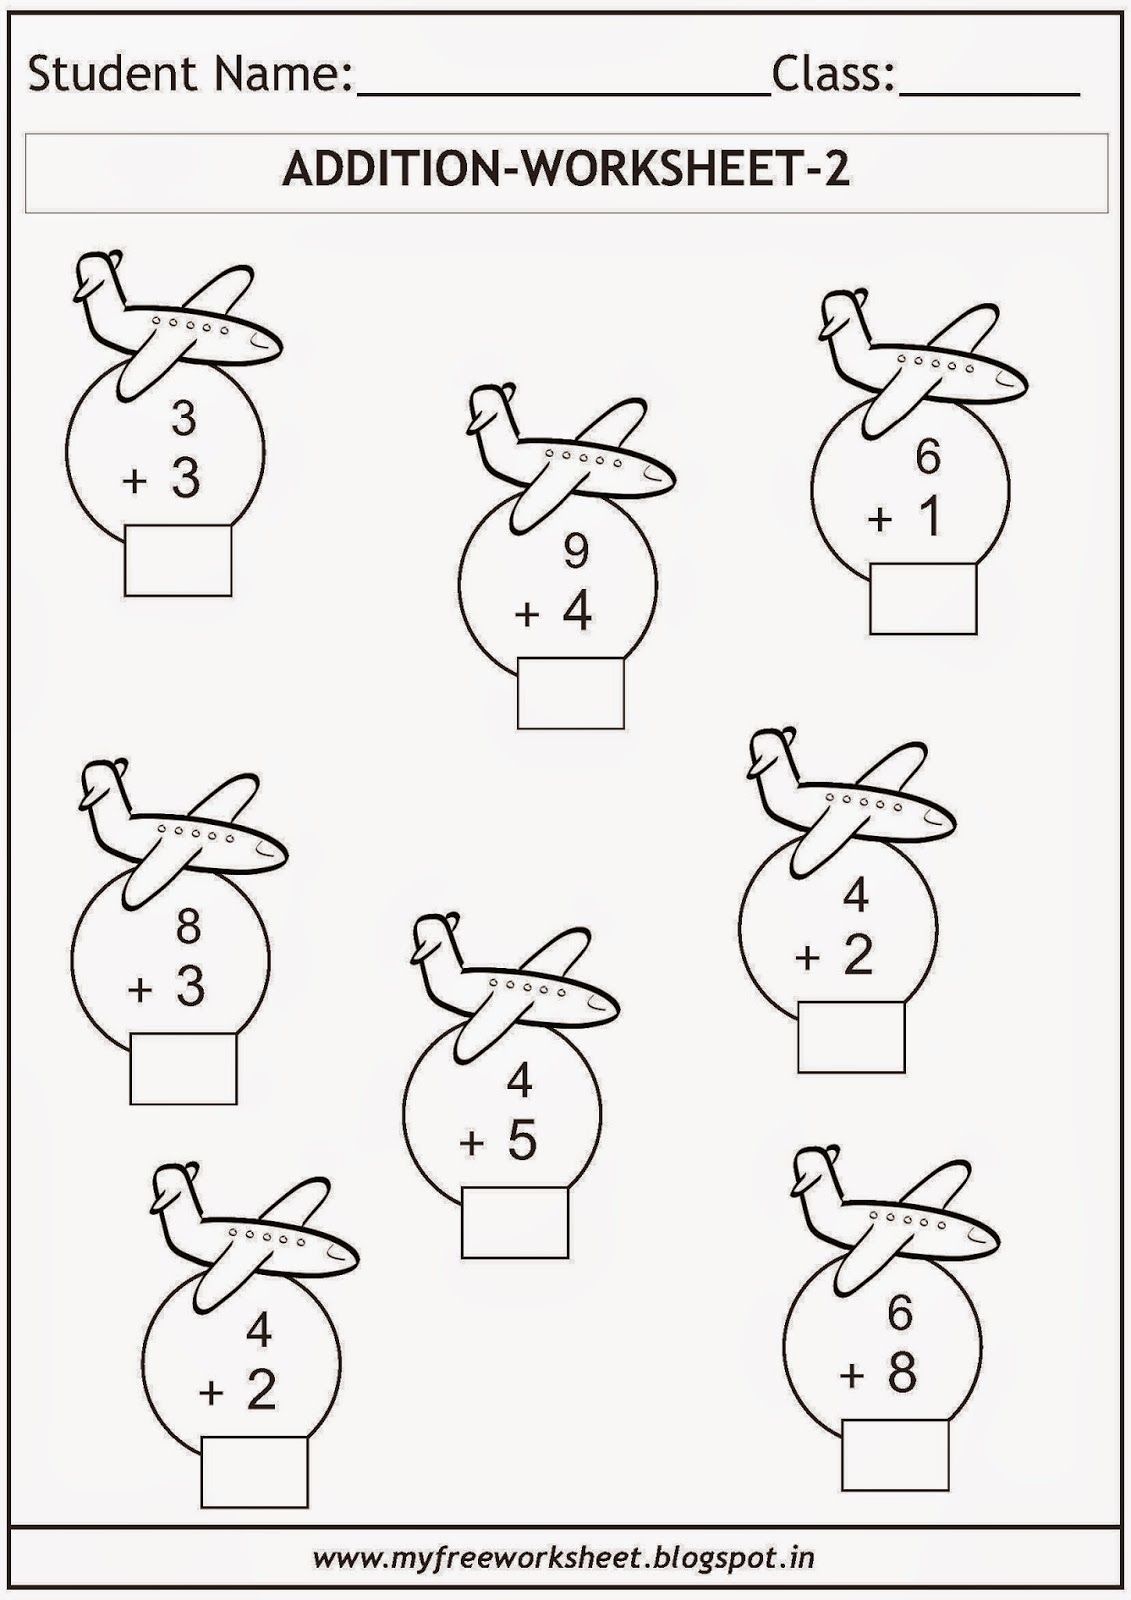 hight resolution of Missing Number Addition Worksheet 1st Grade   Printable Worksheets and  Activities for Teachers